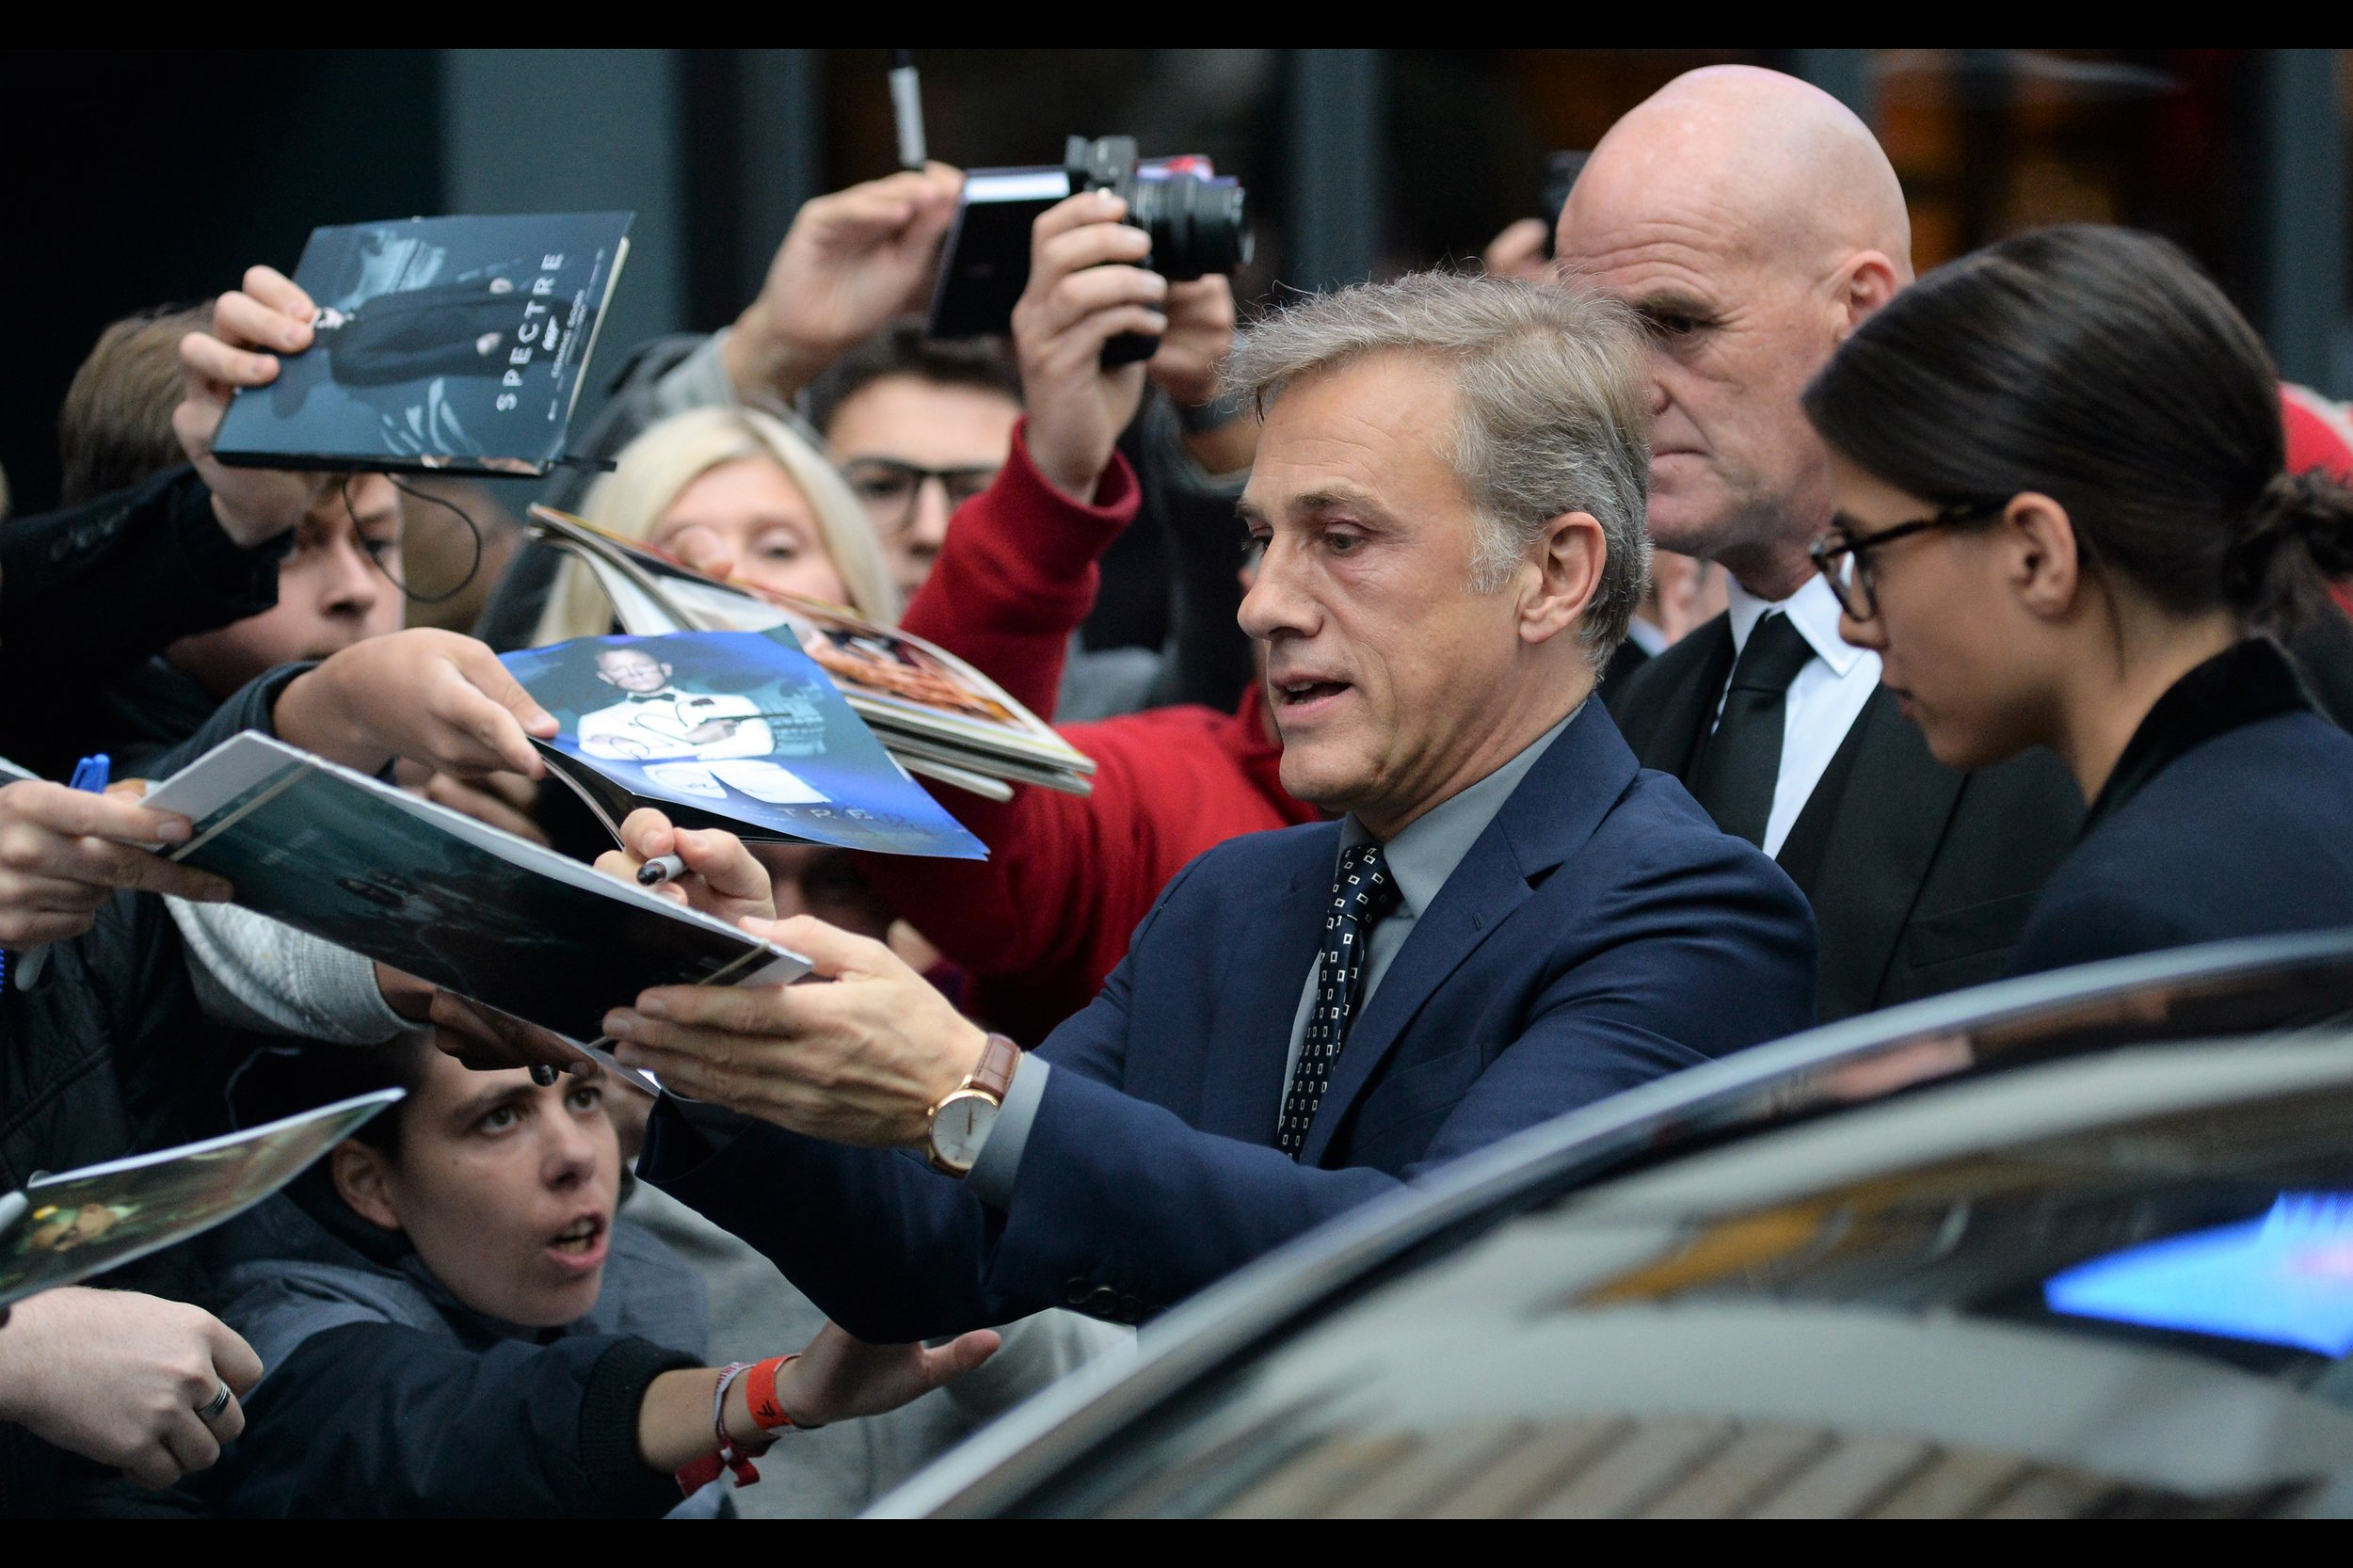 """Any one of you call me ""Christopher"", I'm stopping signing"" - Christoph Waltz is a dual-Oscar Winner (best supporting actor for   ""Inglourious Basterds""   and   ""Django Unchained""  ) and the reason why I have a Kevin Bacon score of 3."